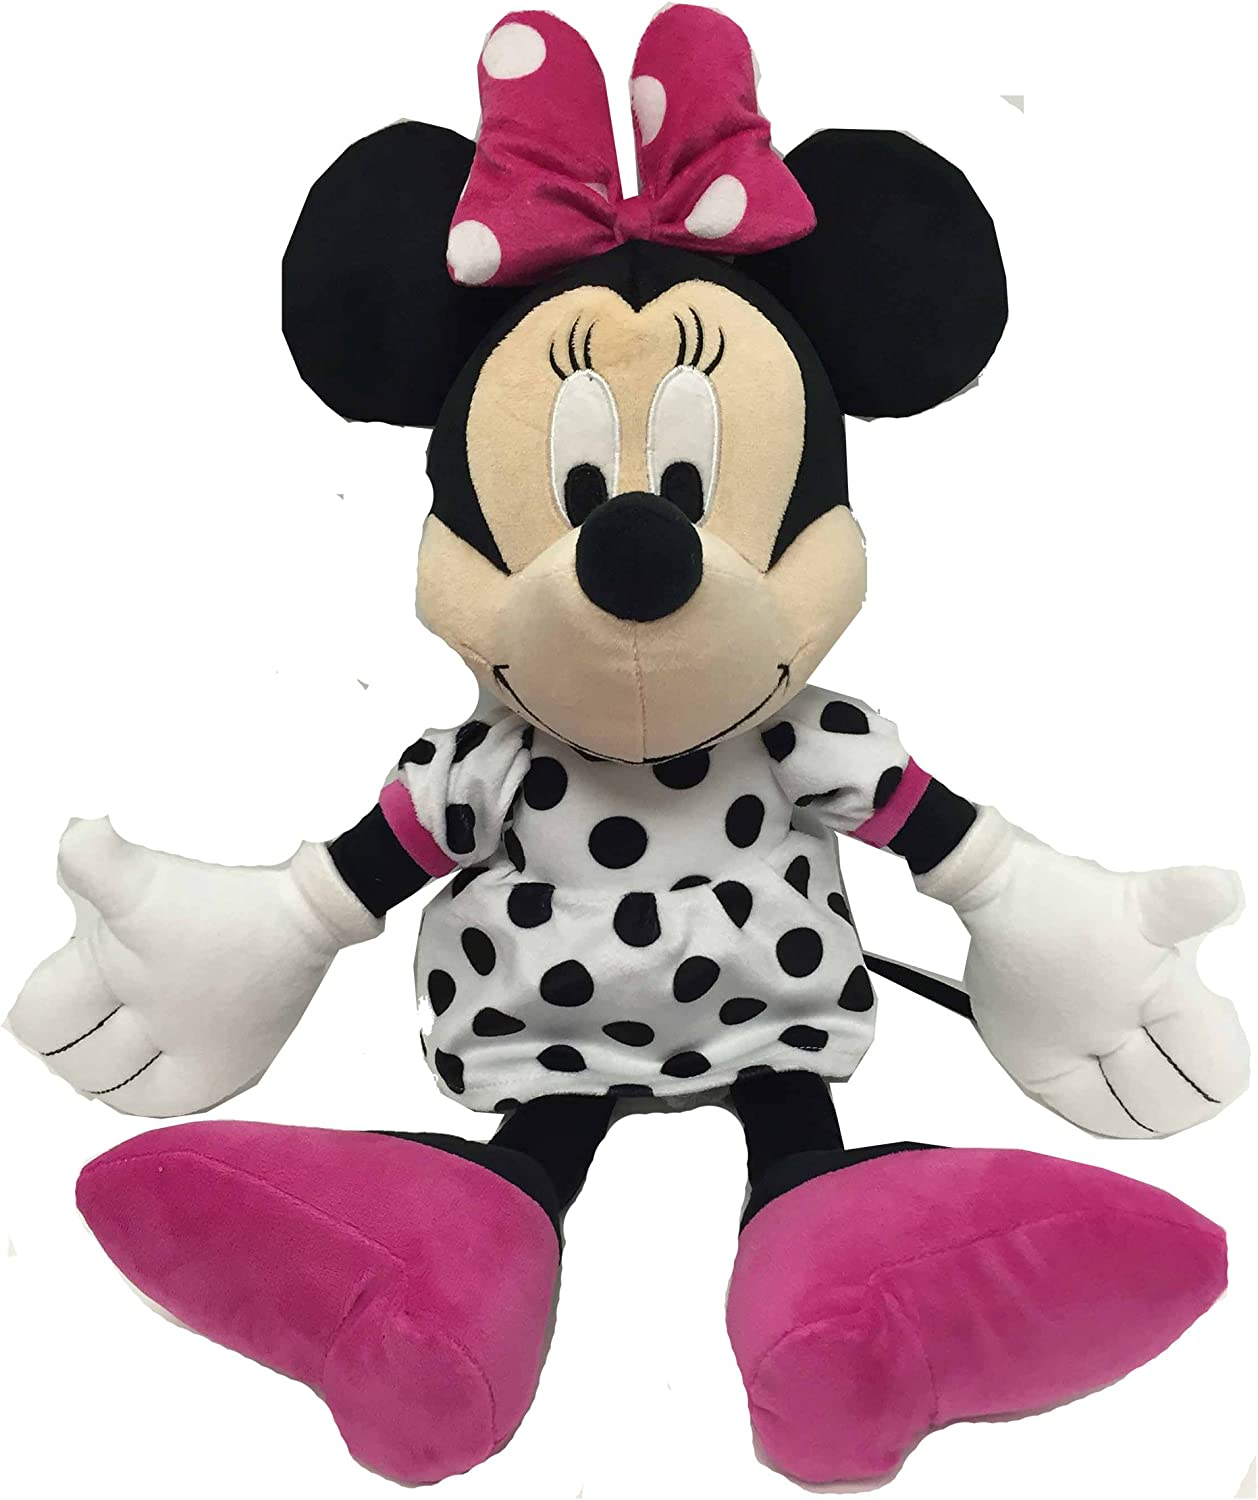 Super Soft Polyester Microfiber 21 inch Jay Franco Disney Minnie Mouse Classics Knit Plush Stuffed Pillow Buddy Knit Official Disney Product